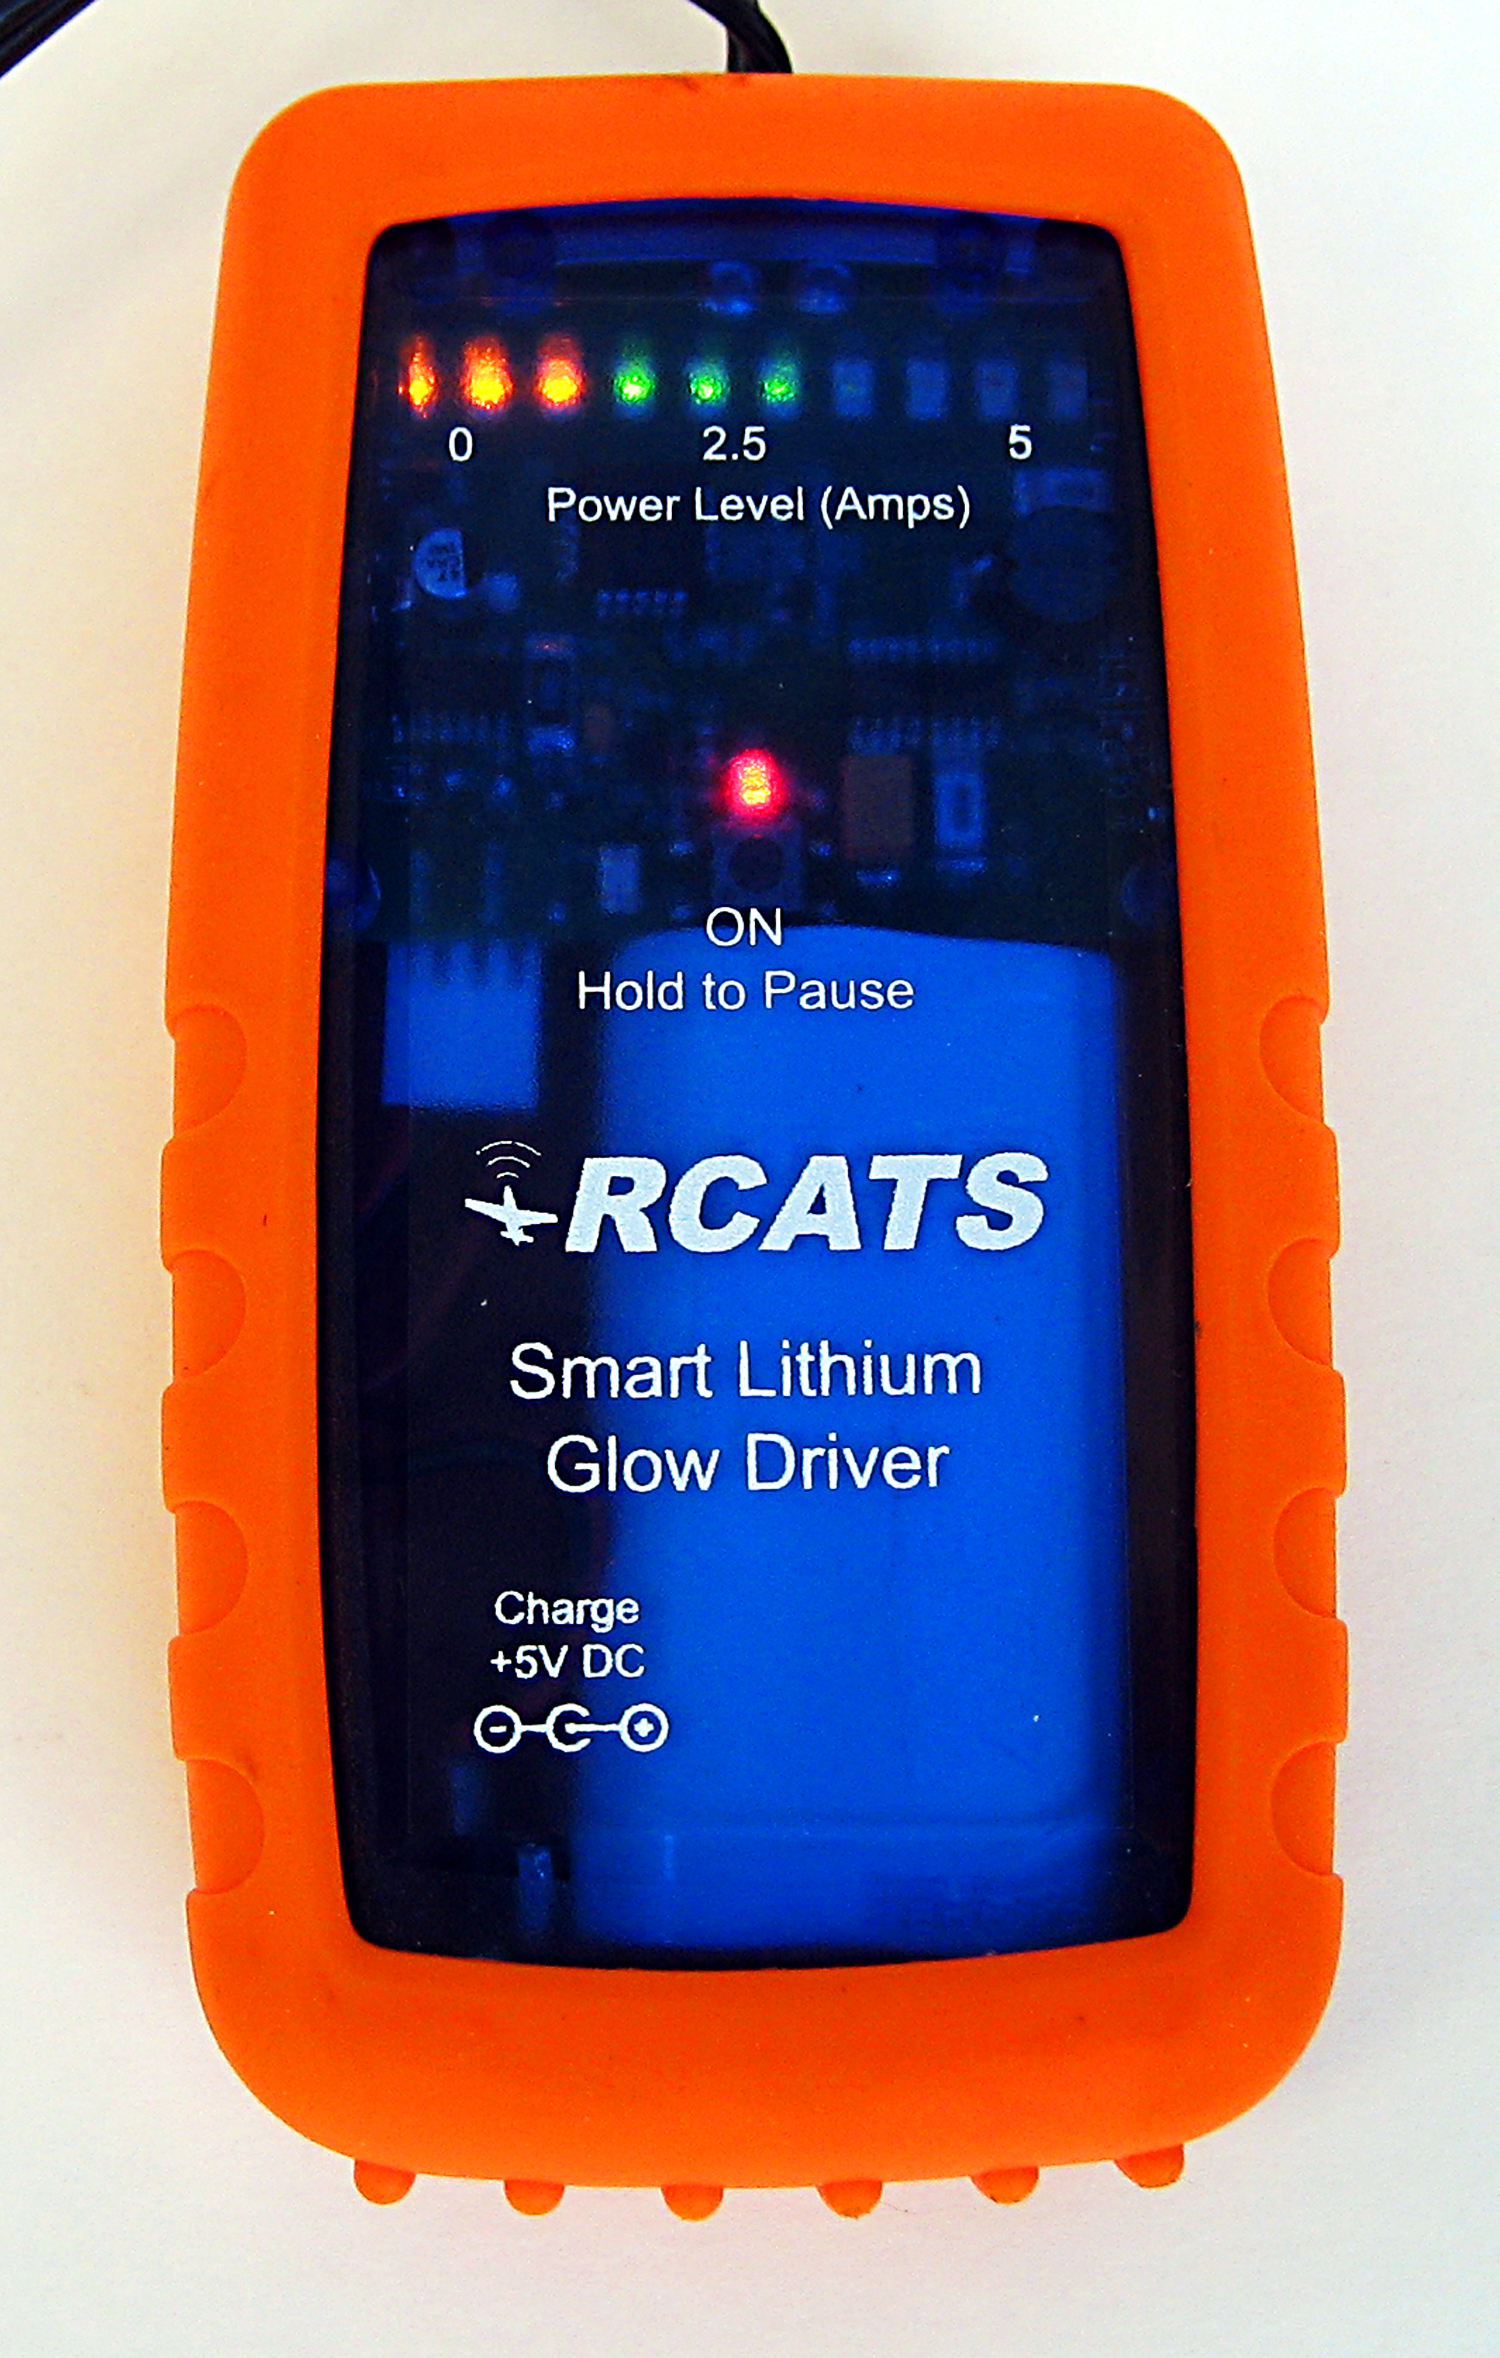 RCATS SMART LITHIUM GLOW DRIVER DOWNLOAD (2019)